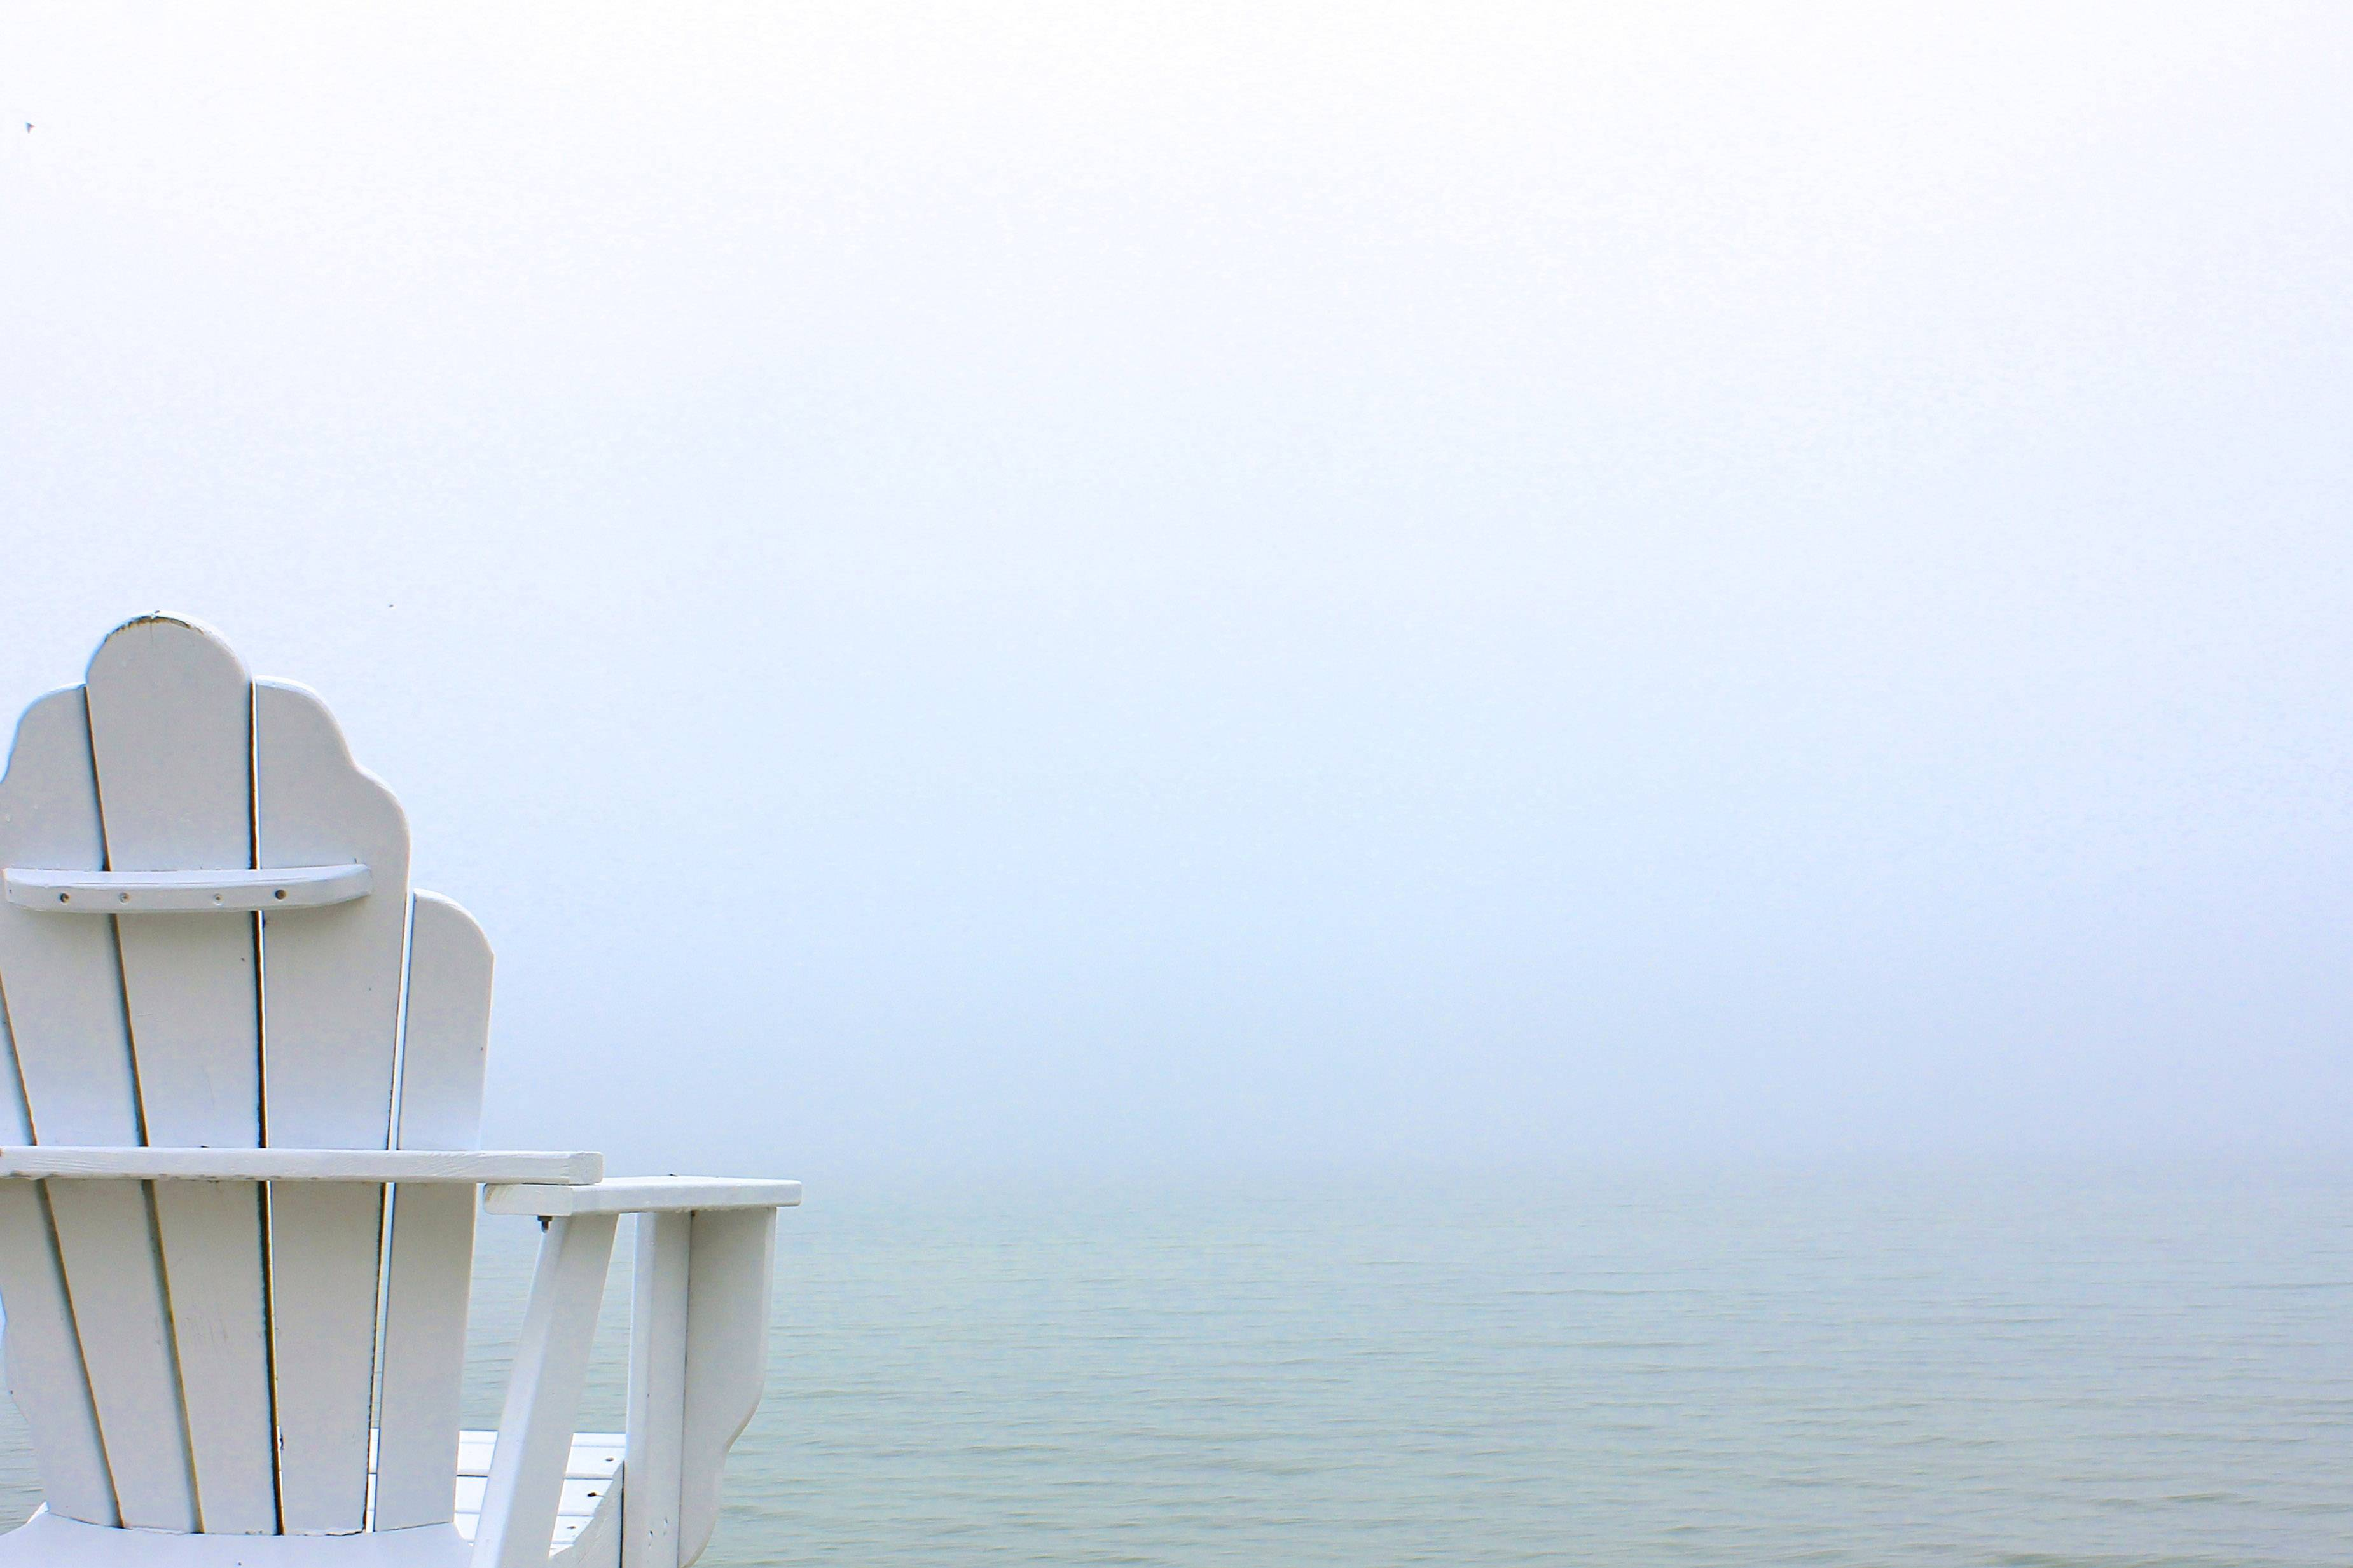 An andirondack chair sits empty on a pier in Ephraim, Wisconsin on a cold and extremely foggy Monday morning on May 12.